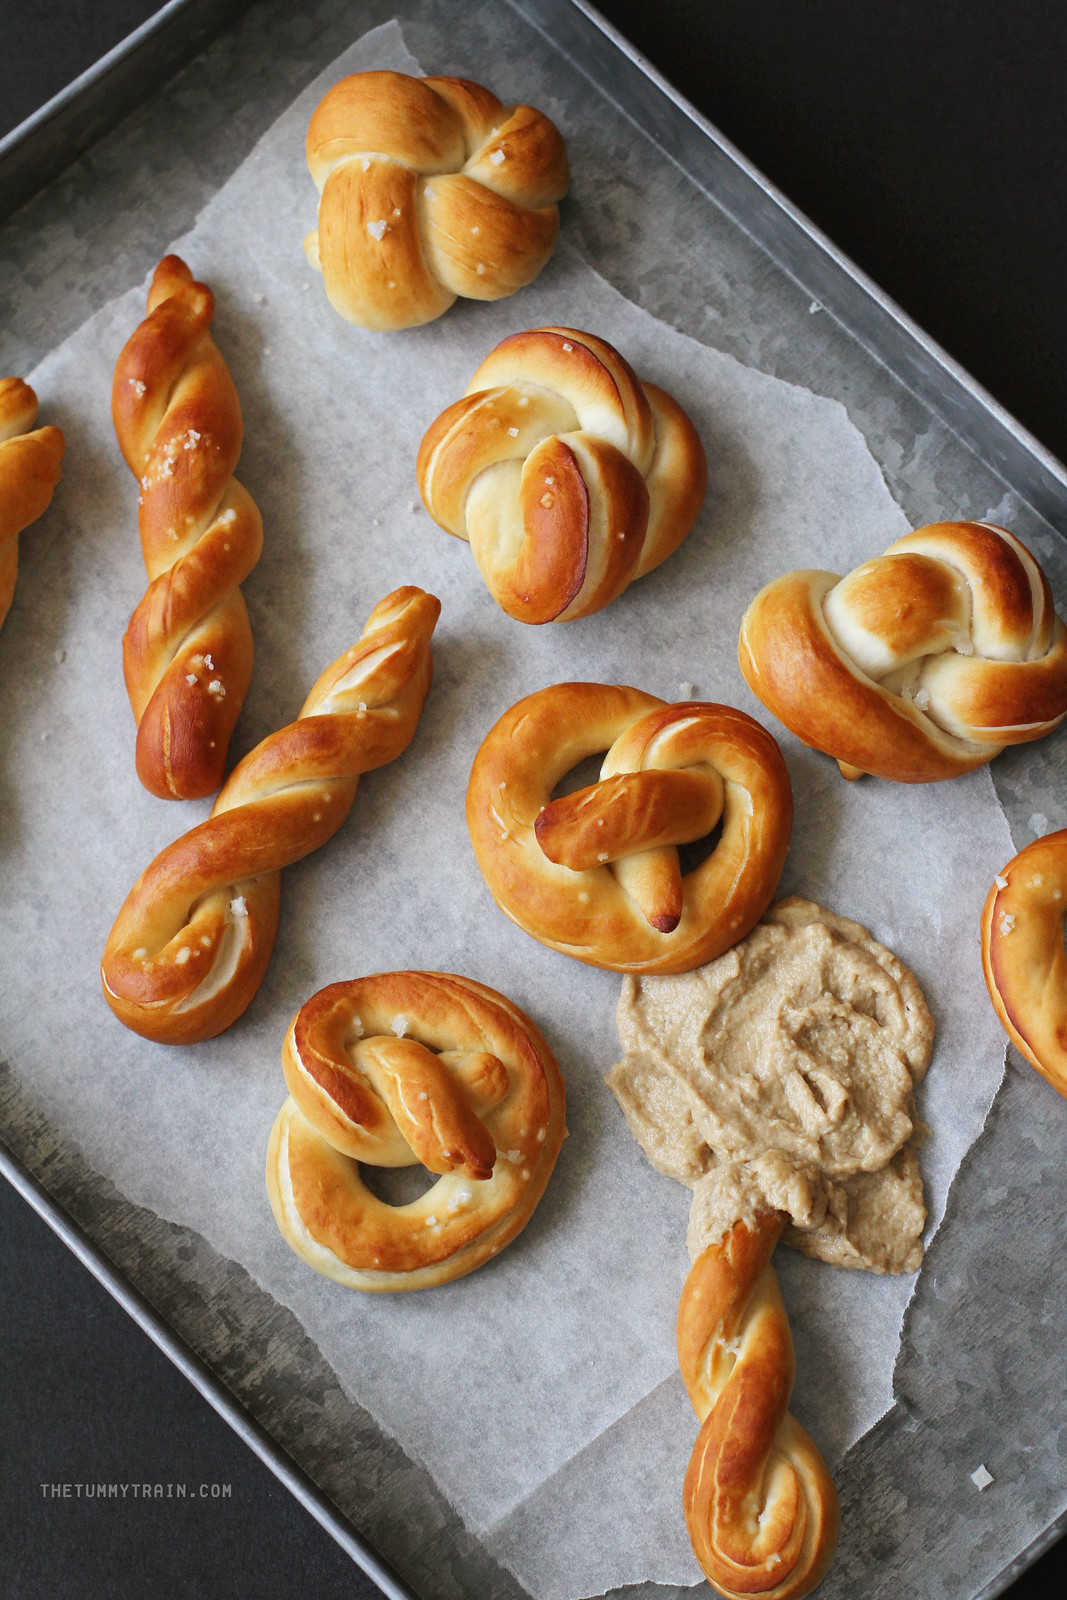 30645366492 4dbaf52e3d h - Pretzels with Mustard Dip attempted out of curiosity + a tutorial on how to shape pretzels